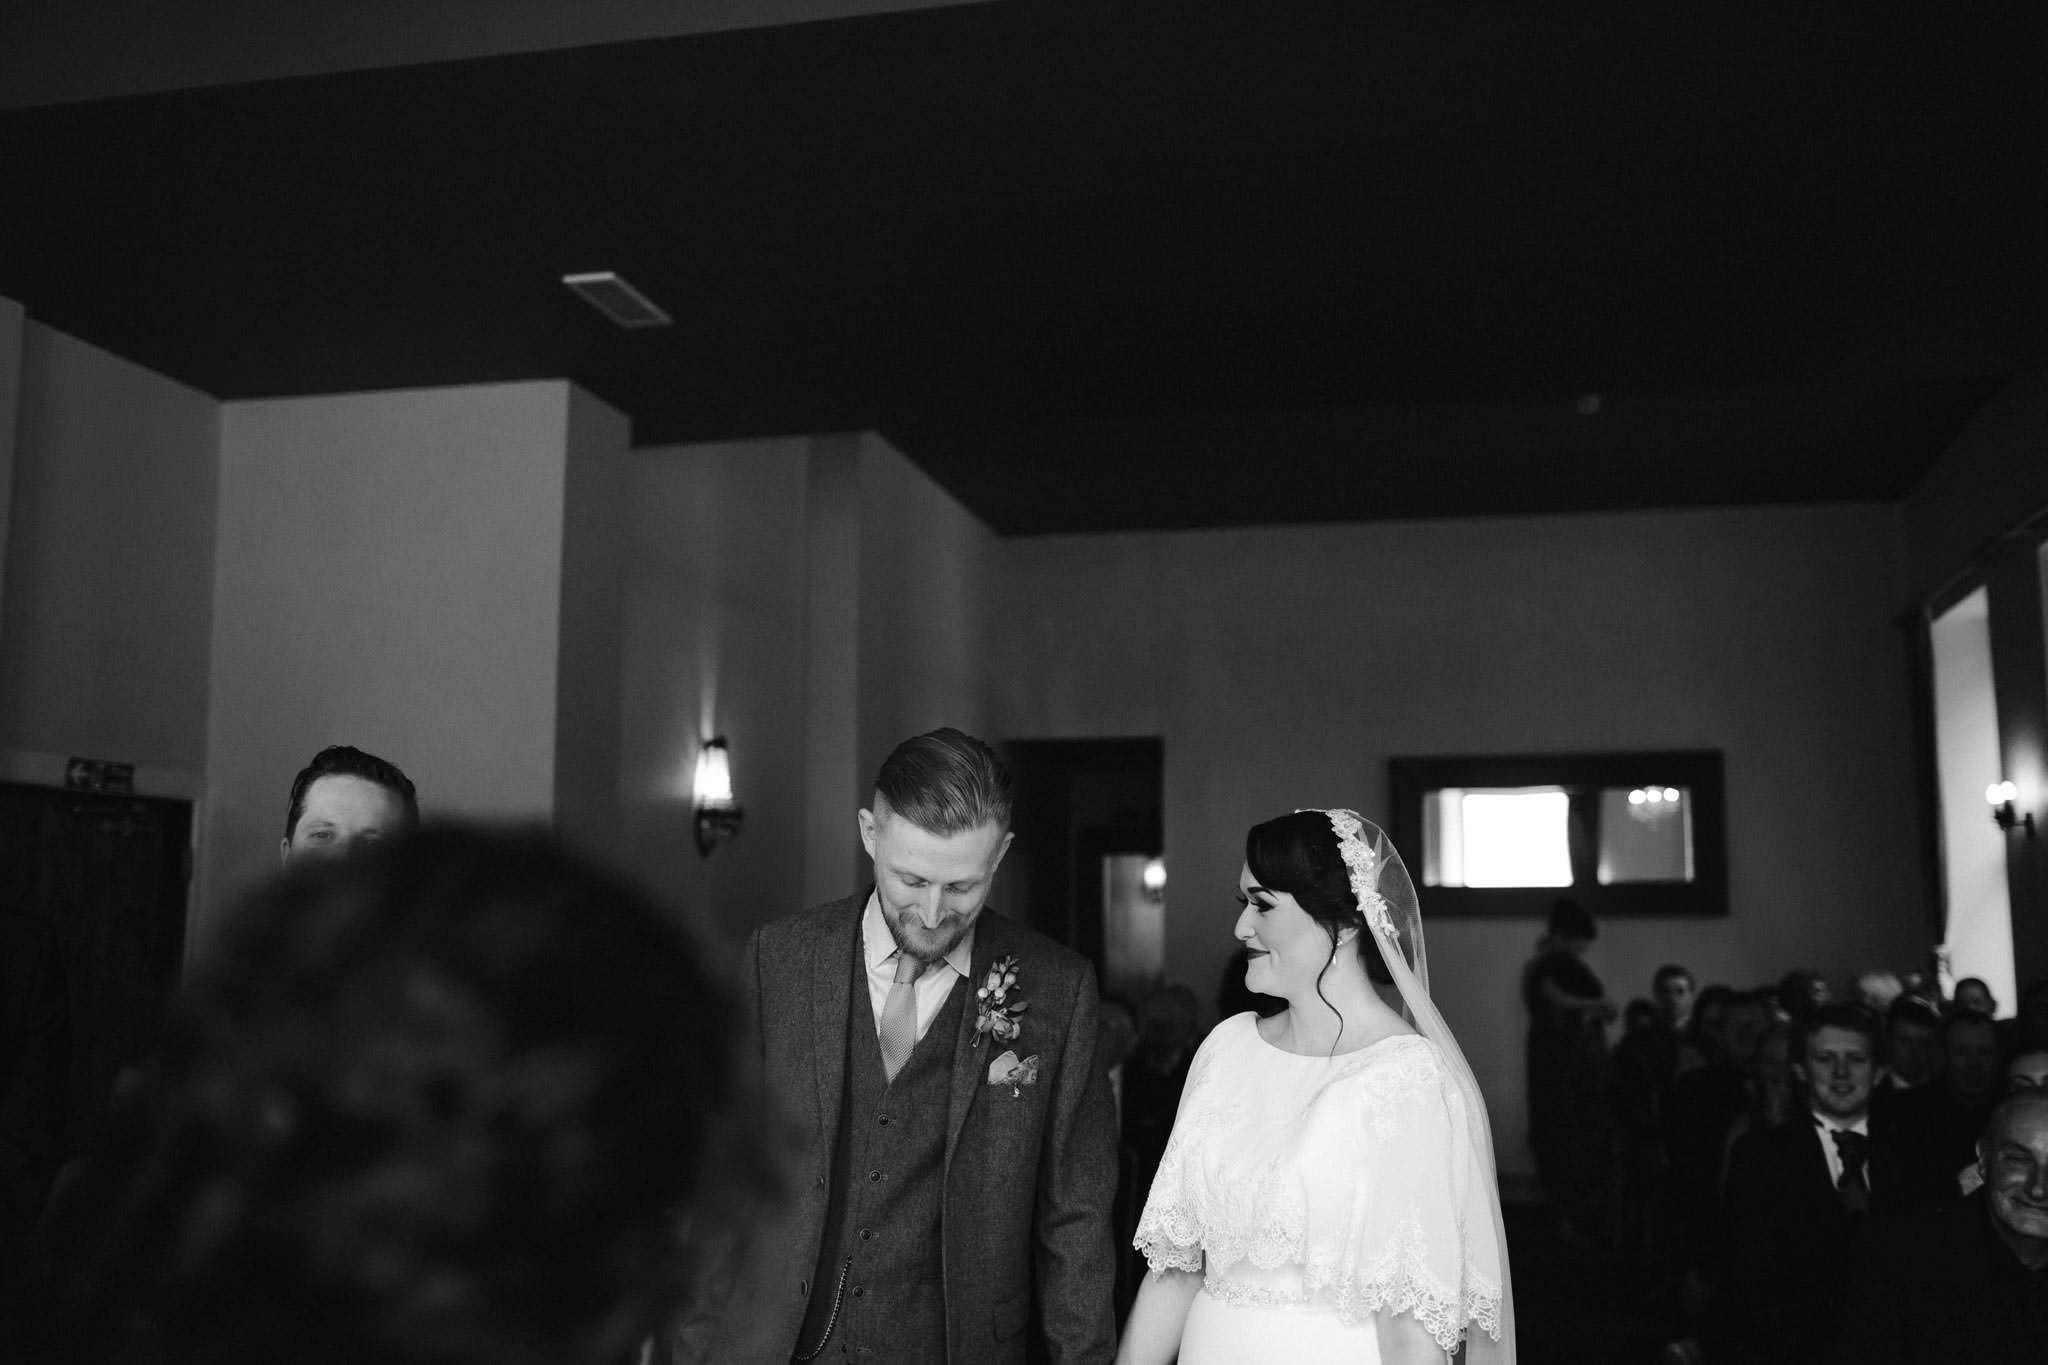 scottish-wedding-photographer-054